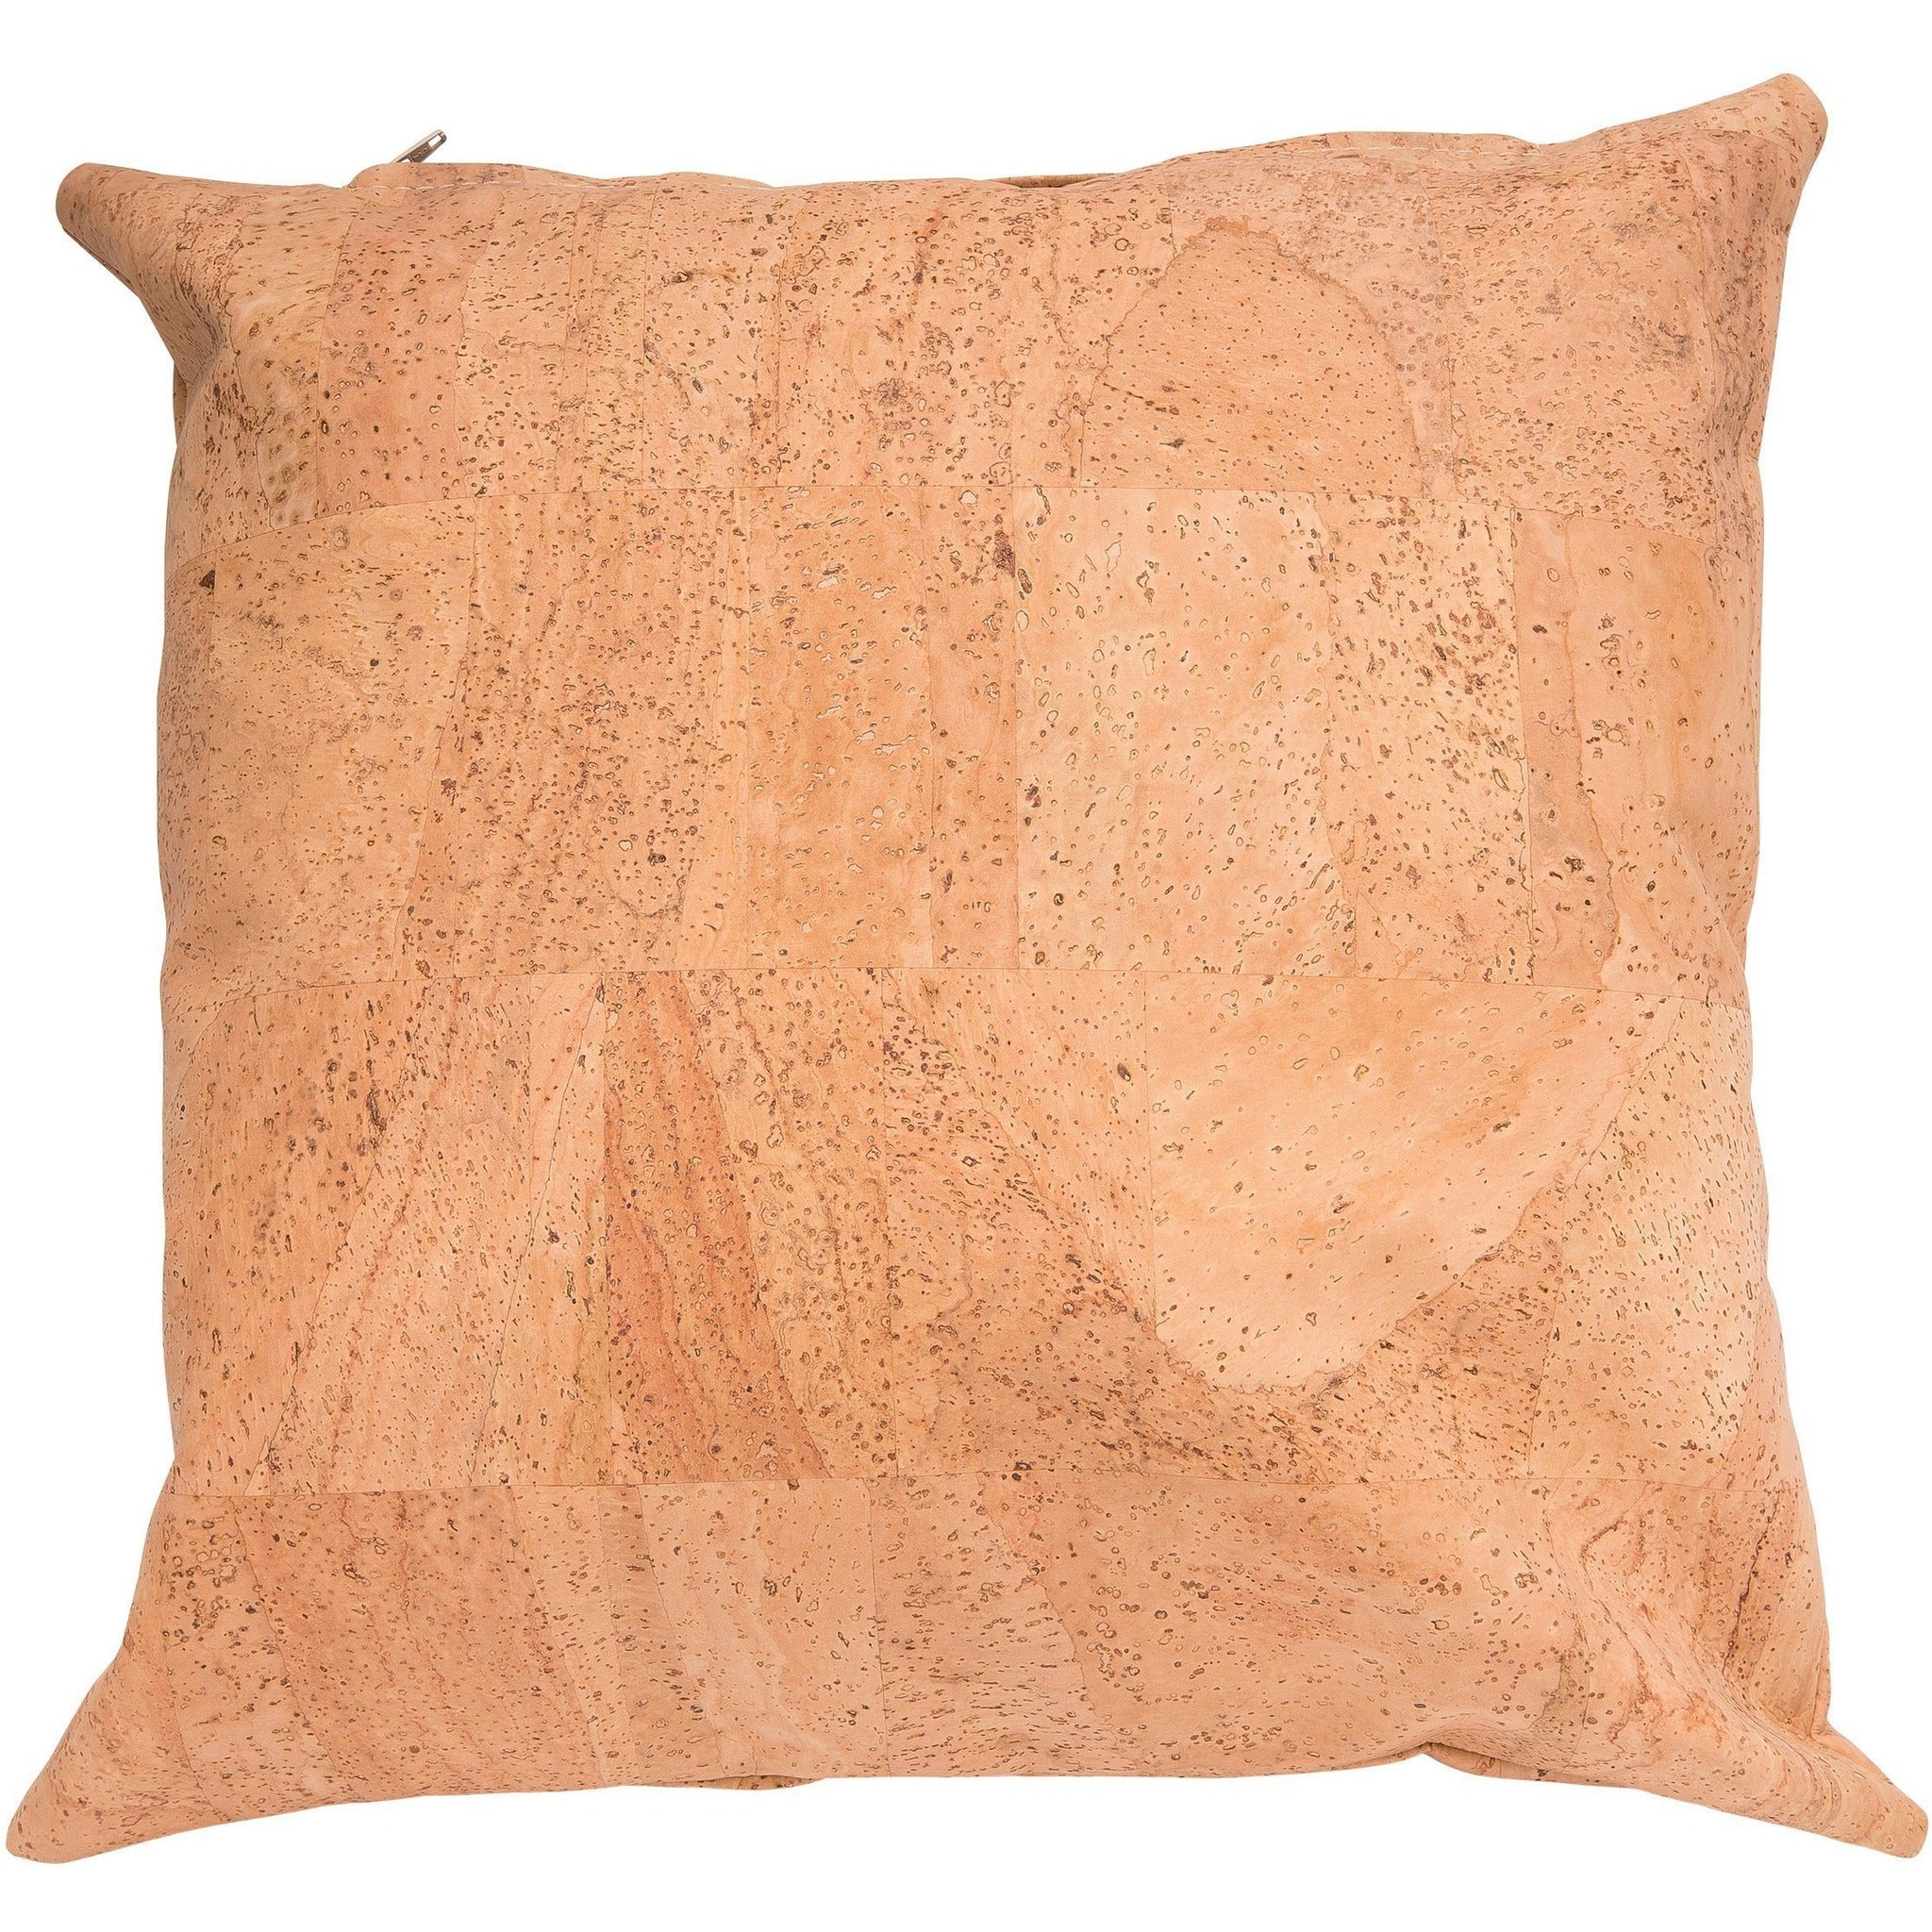 Cork Pillow Case